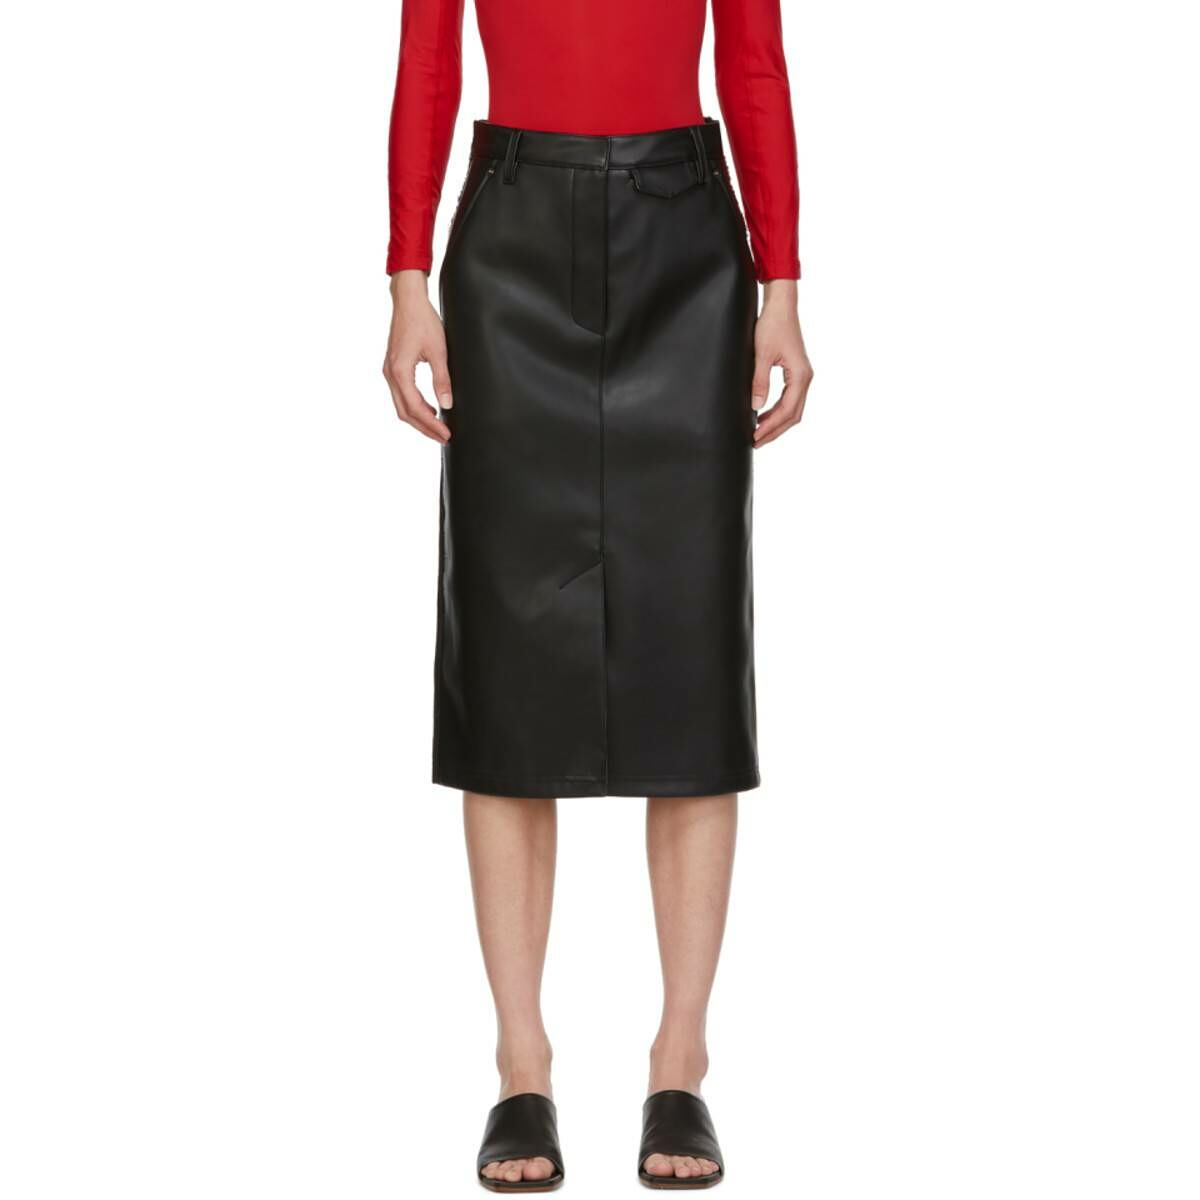 Pushbutton SSENSE Exclusive Black Faux-Leather and Denim Skirt Ssense USA WOMEN Women FASHION Womens SKIRTS